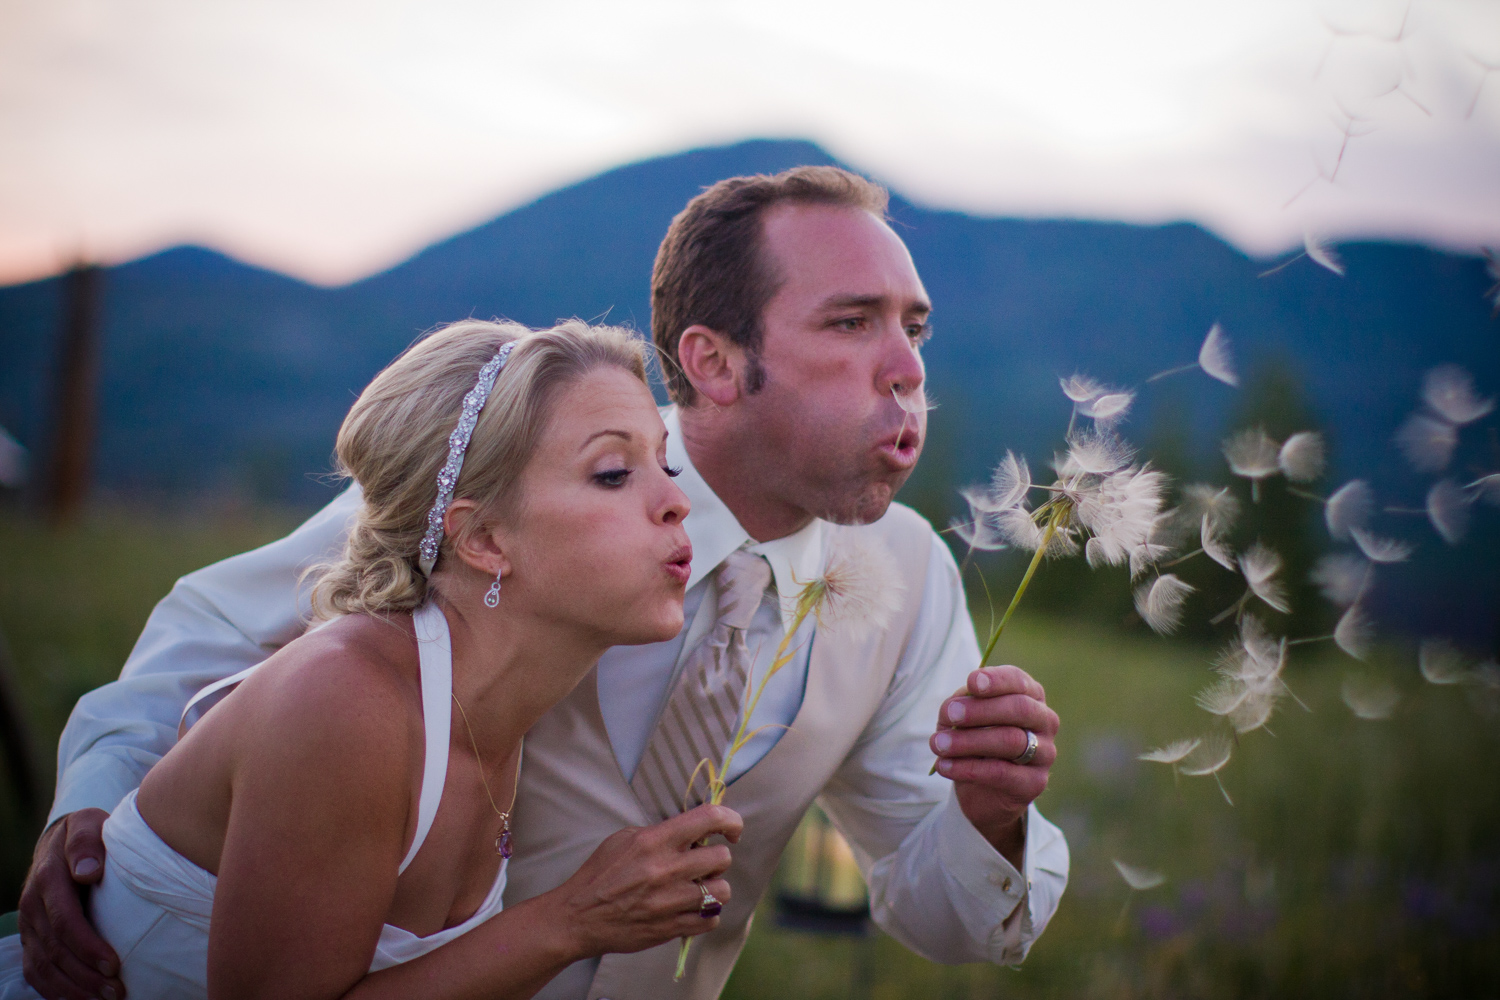 Steamboat_Springs_Wedding_092.JPG